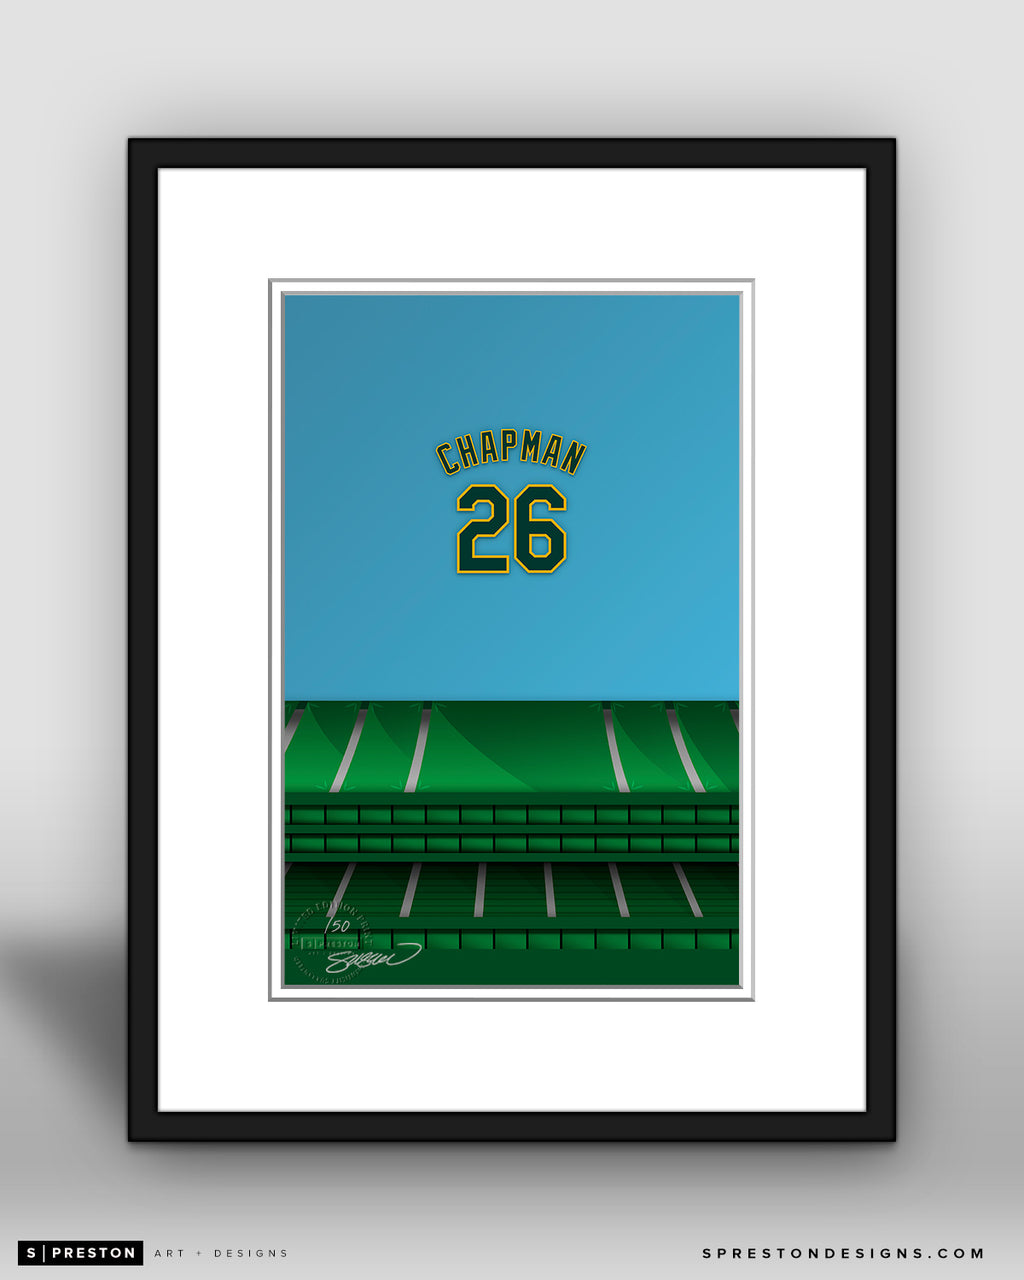 Minimalist Oakland Coliseum - Player Series - Matt Chapman - Oakland Athletics - S. Preston